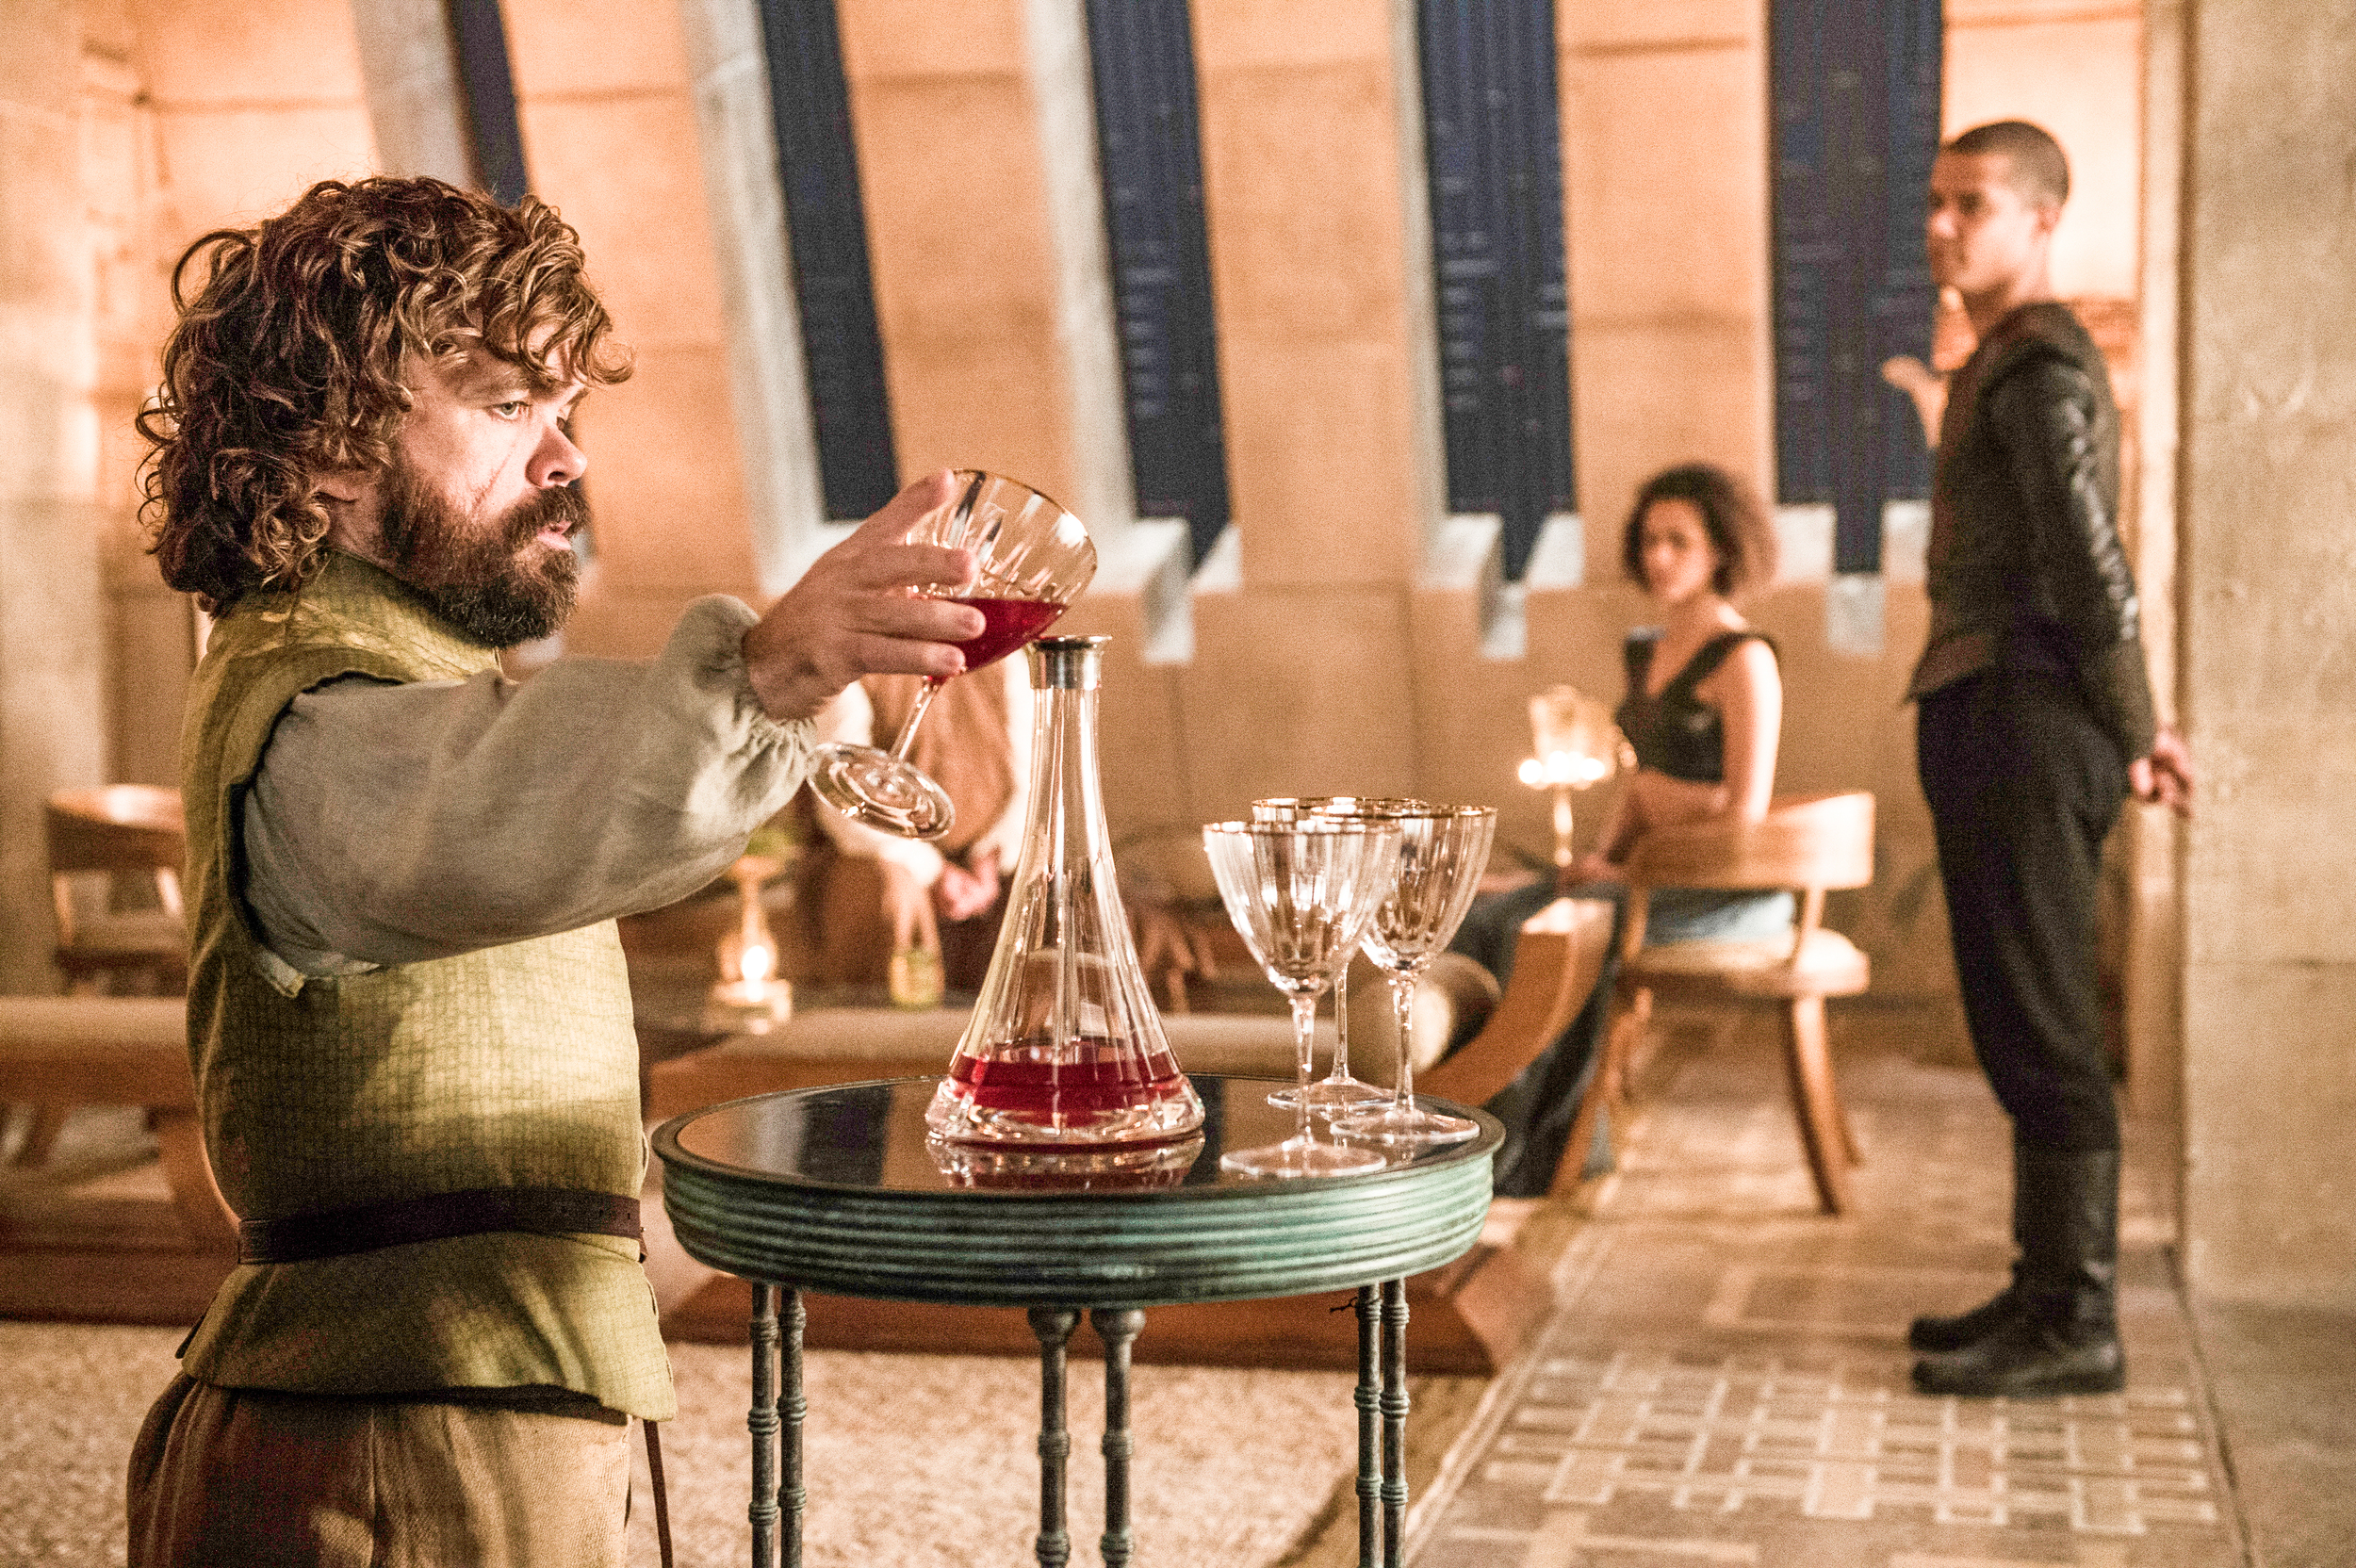 game of thrones season 6 photos, tyrion lannister, grey worm, missandei